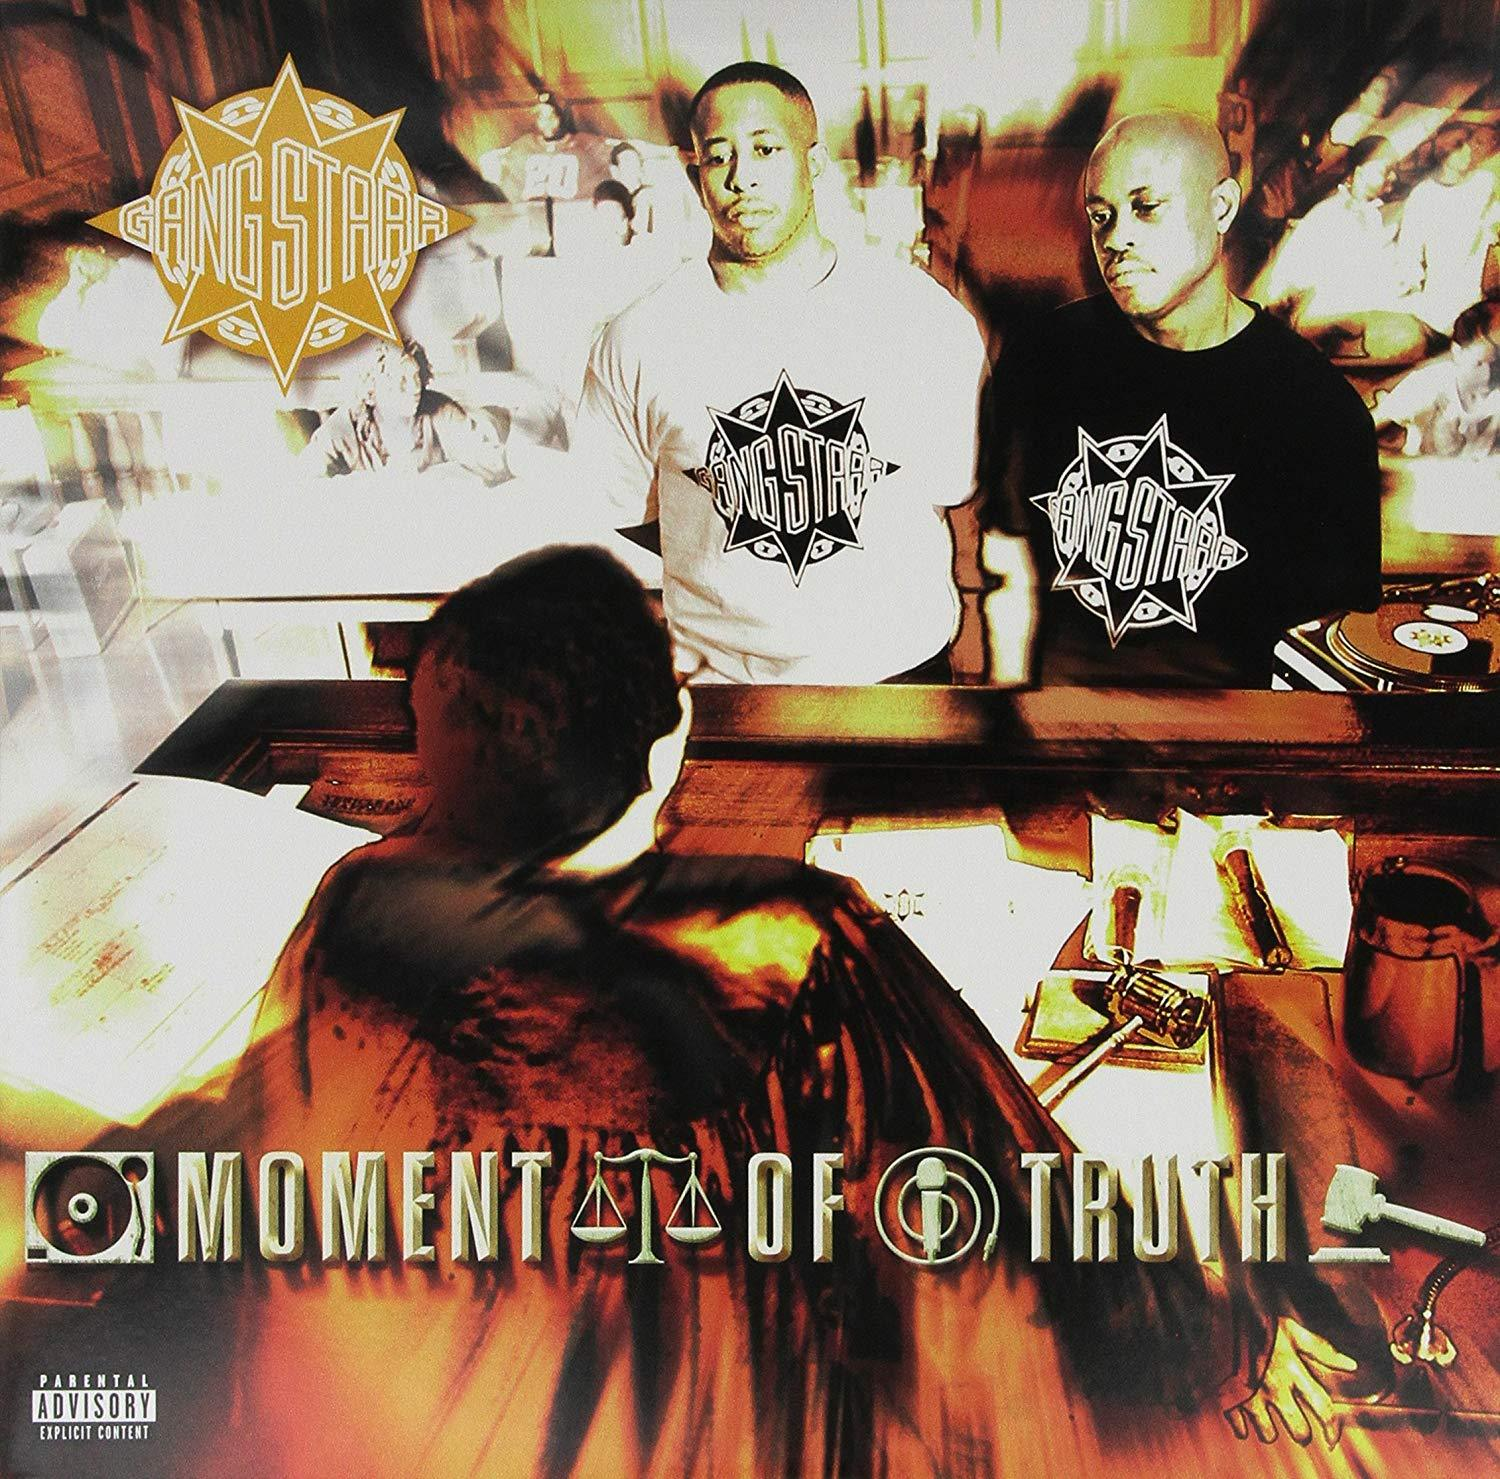 Gang Starr - Moment Of Truth [3LP] (Vinyl) - Urban Vinyl | Records, Headphones, and more.